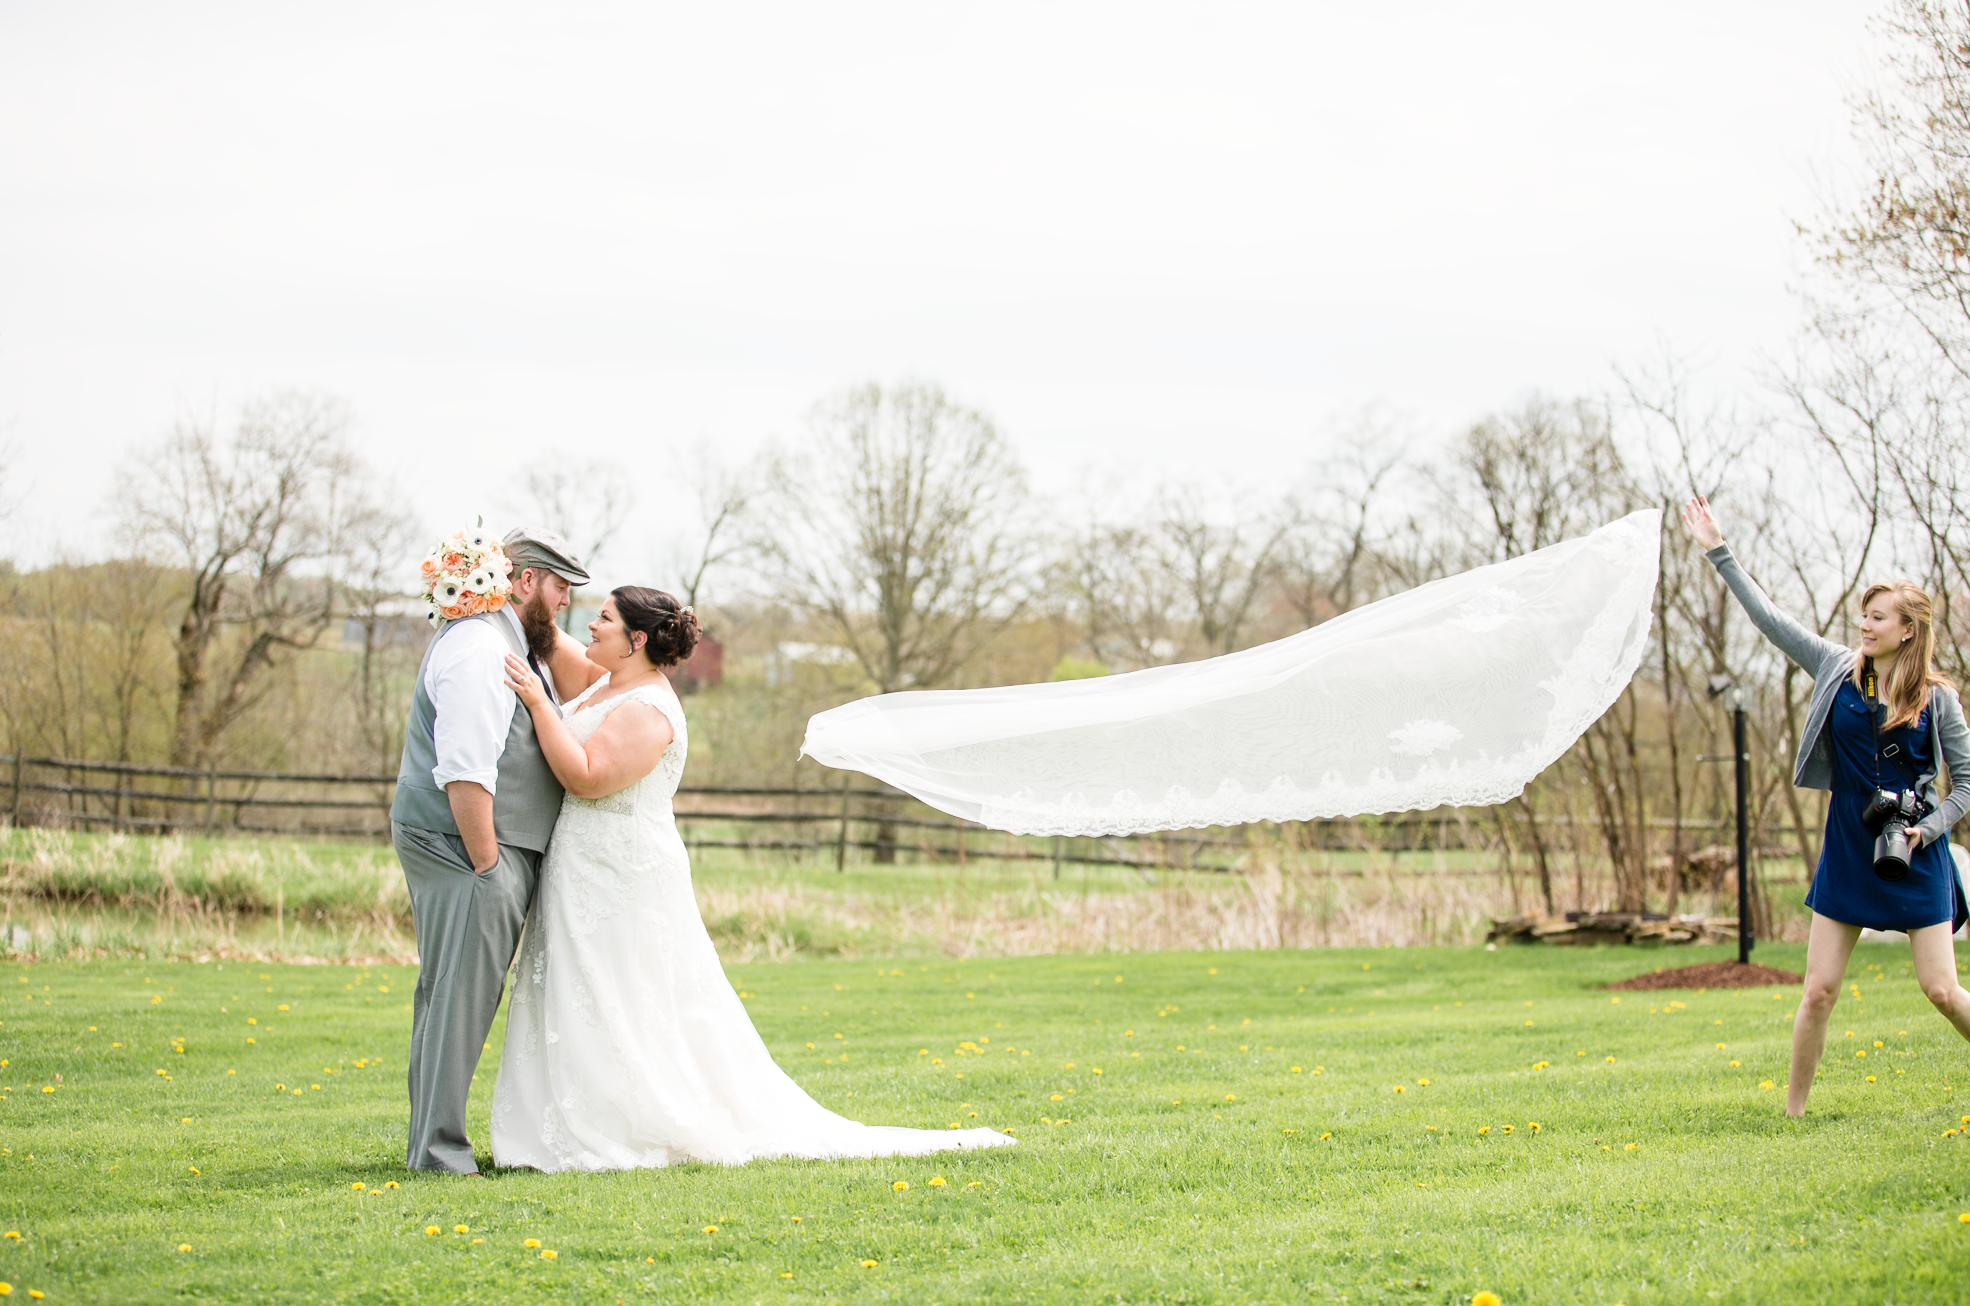 The veil was not harmed in the making of this shot!